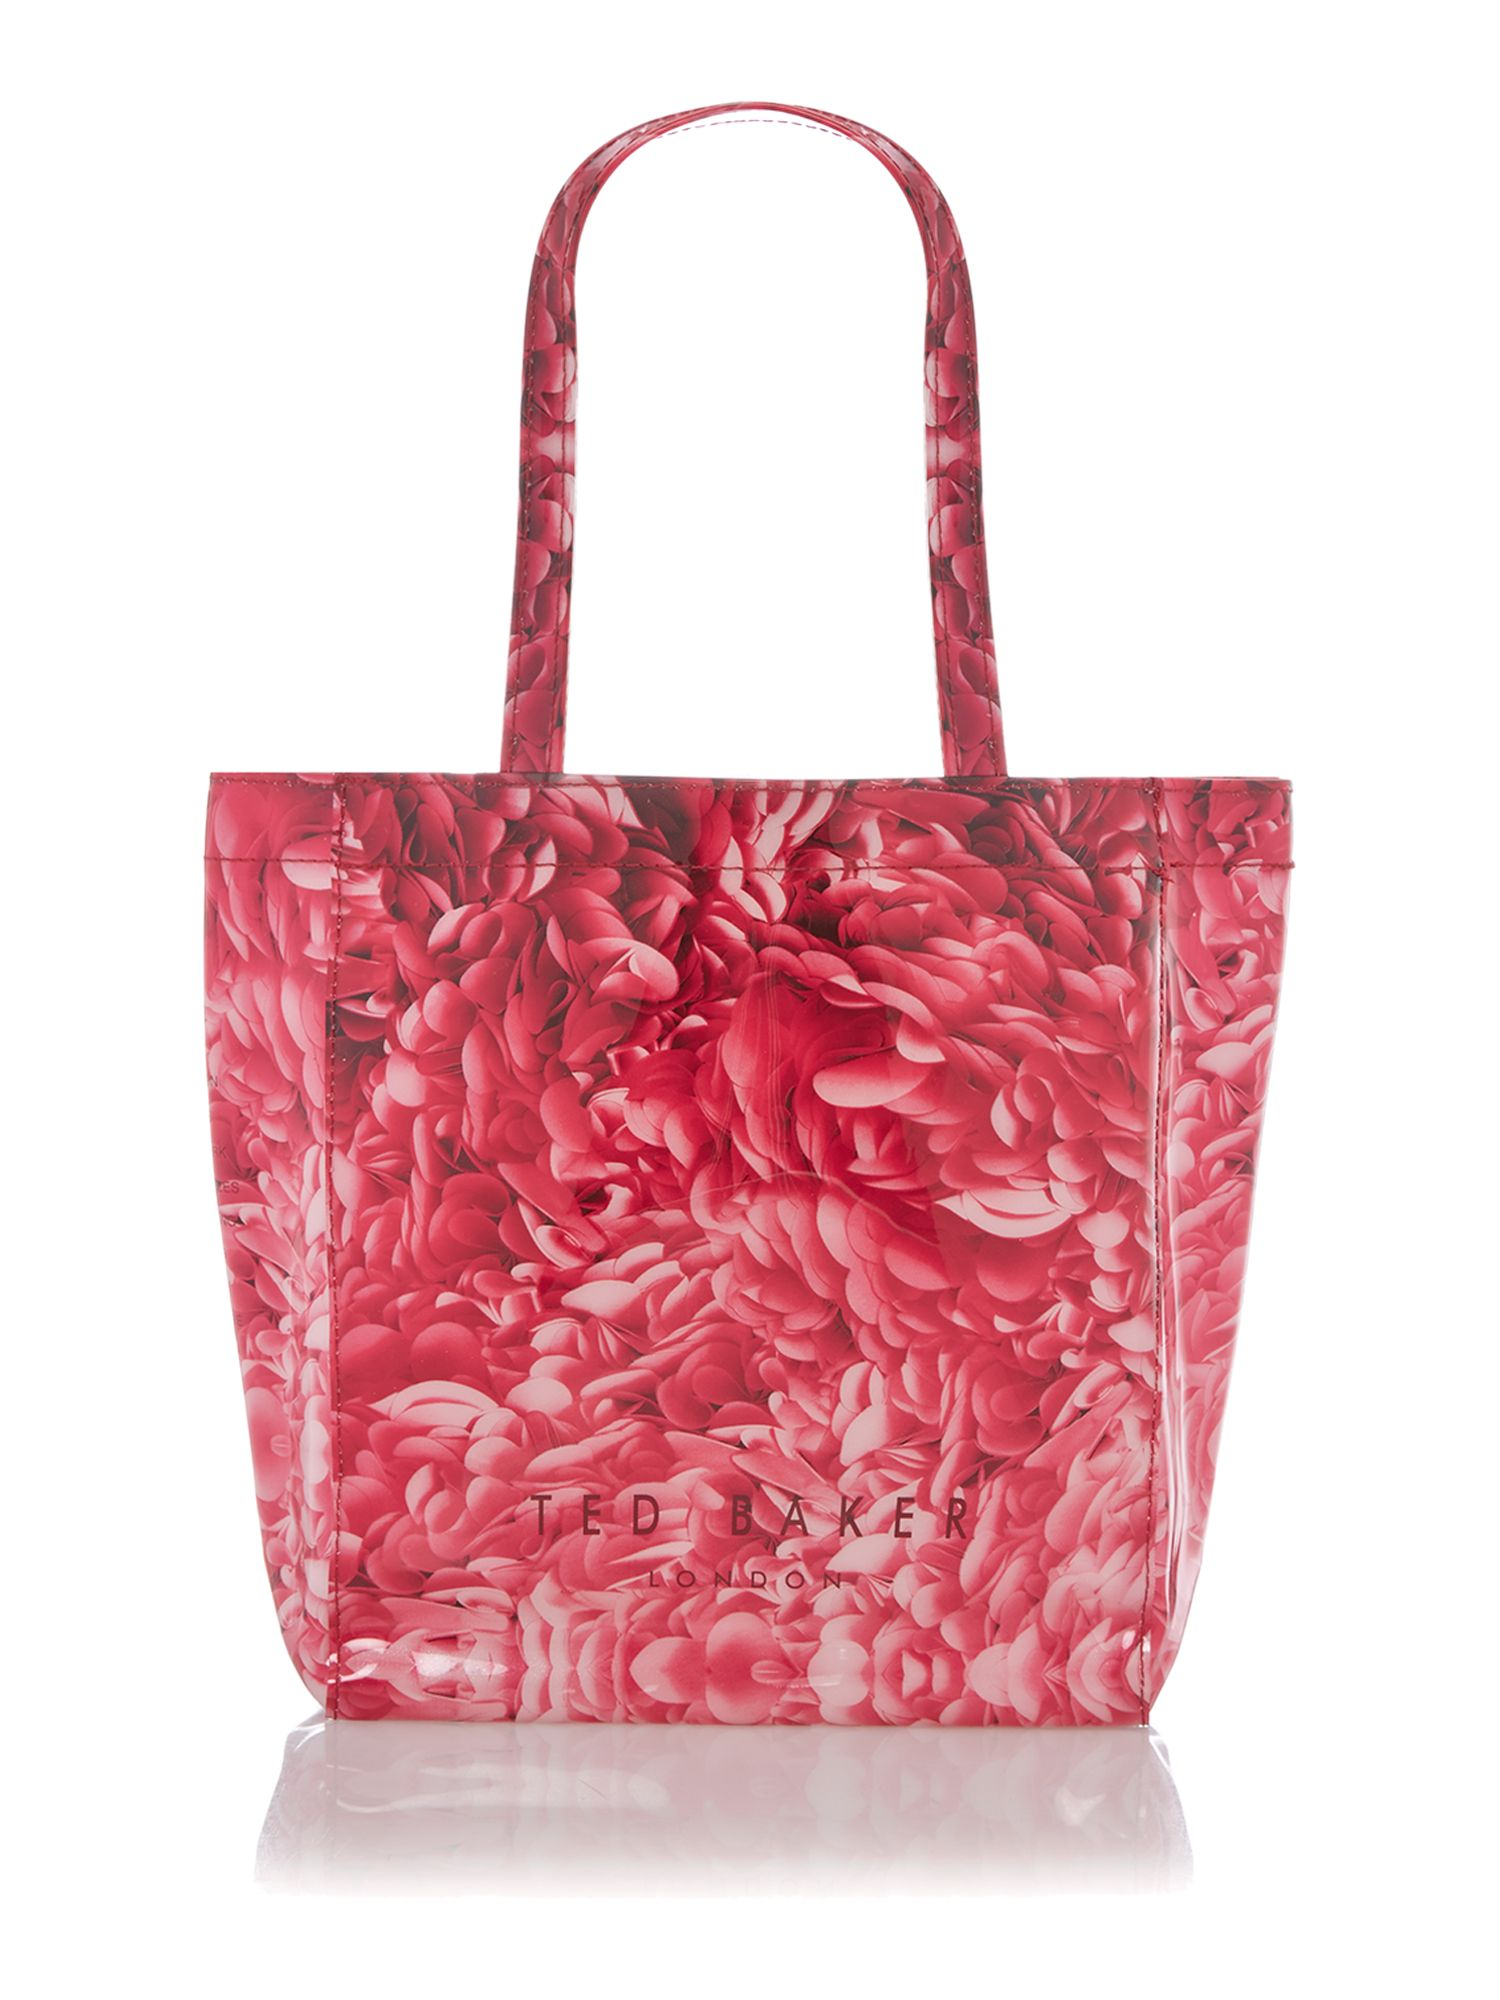 Exclusive rosette printed small icon tote bag